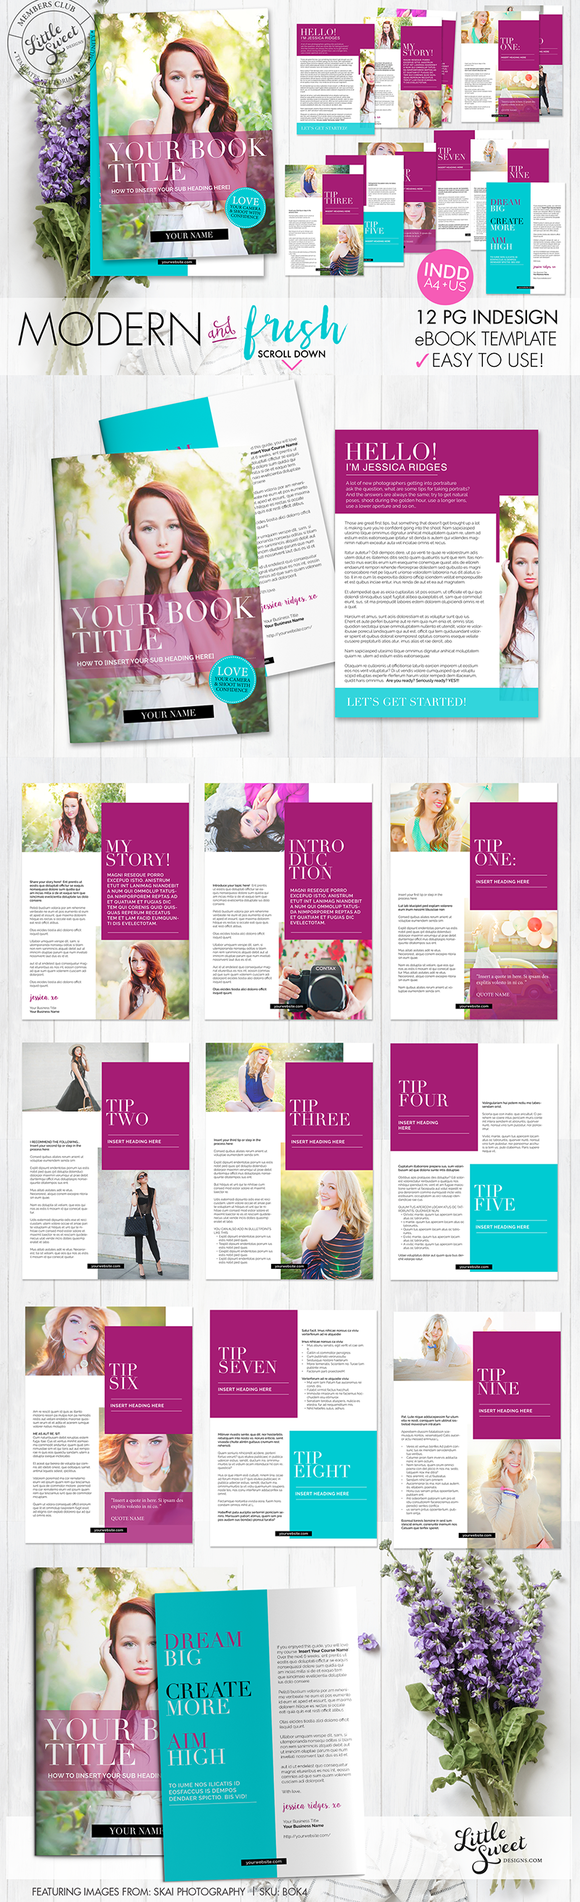 12 page eBook Template / INDD + PSD | Pinterest